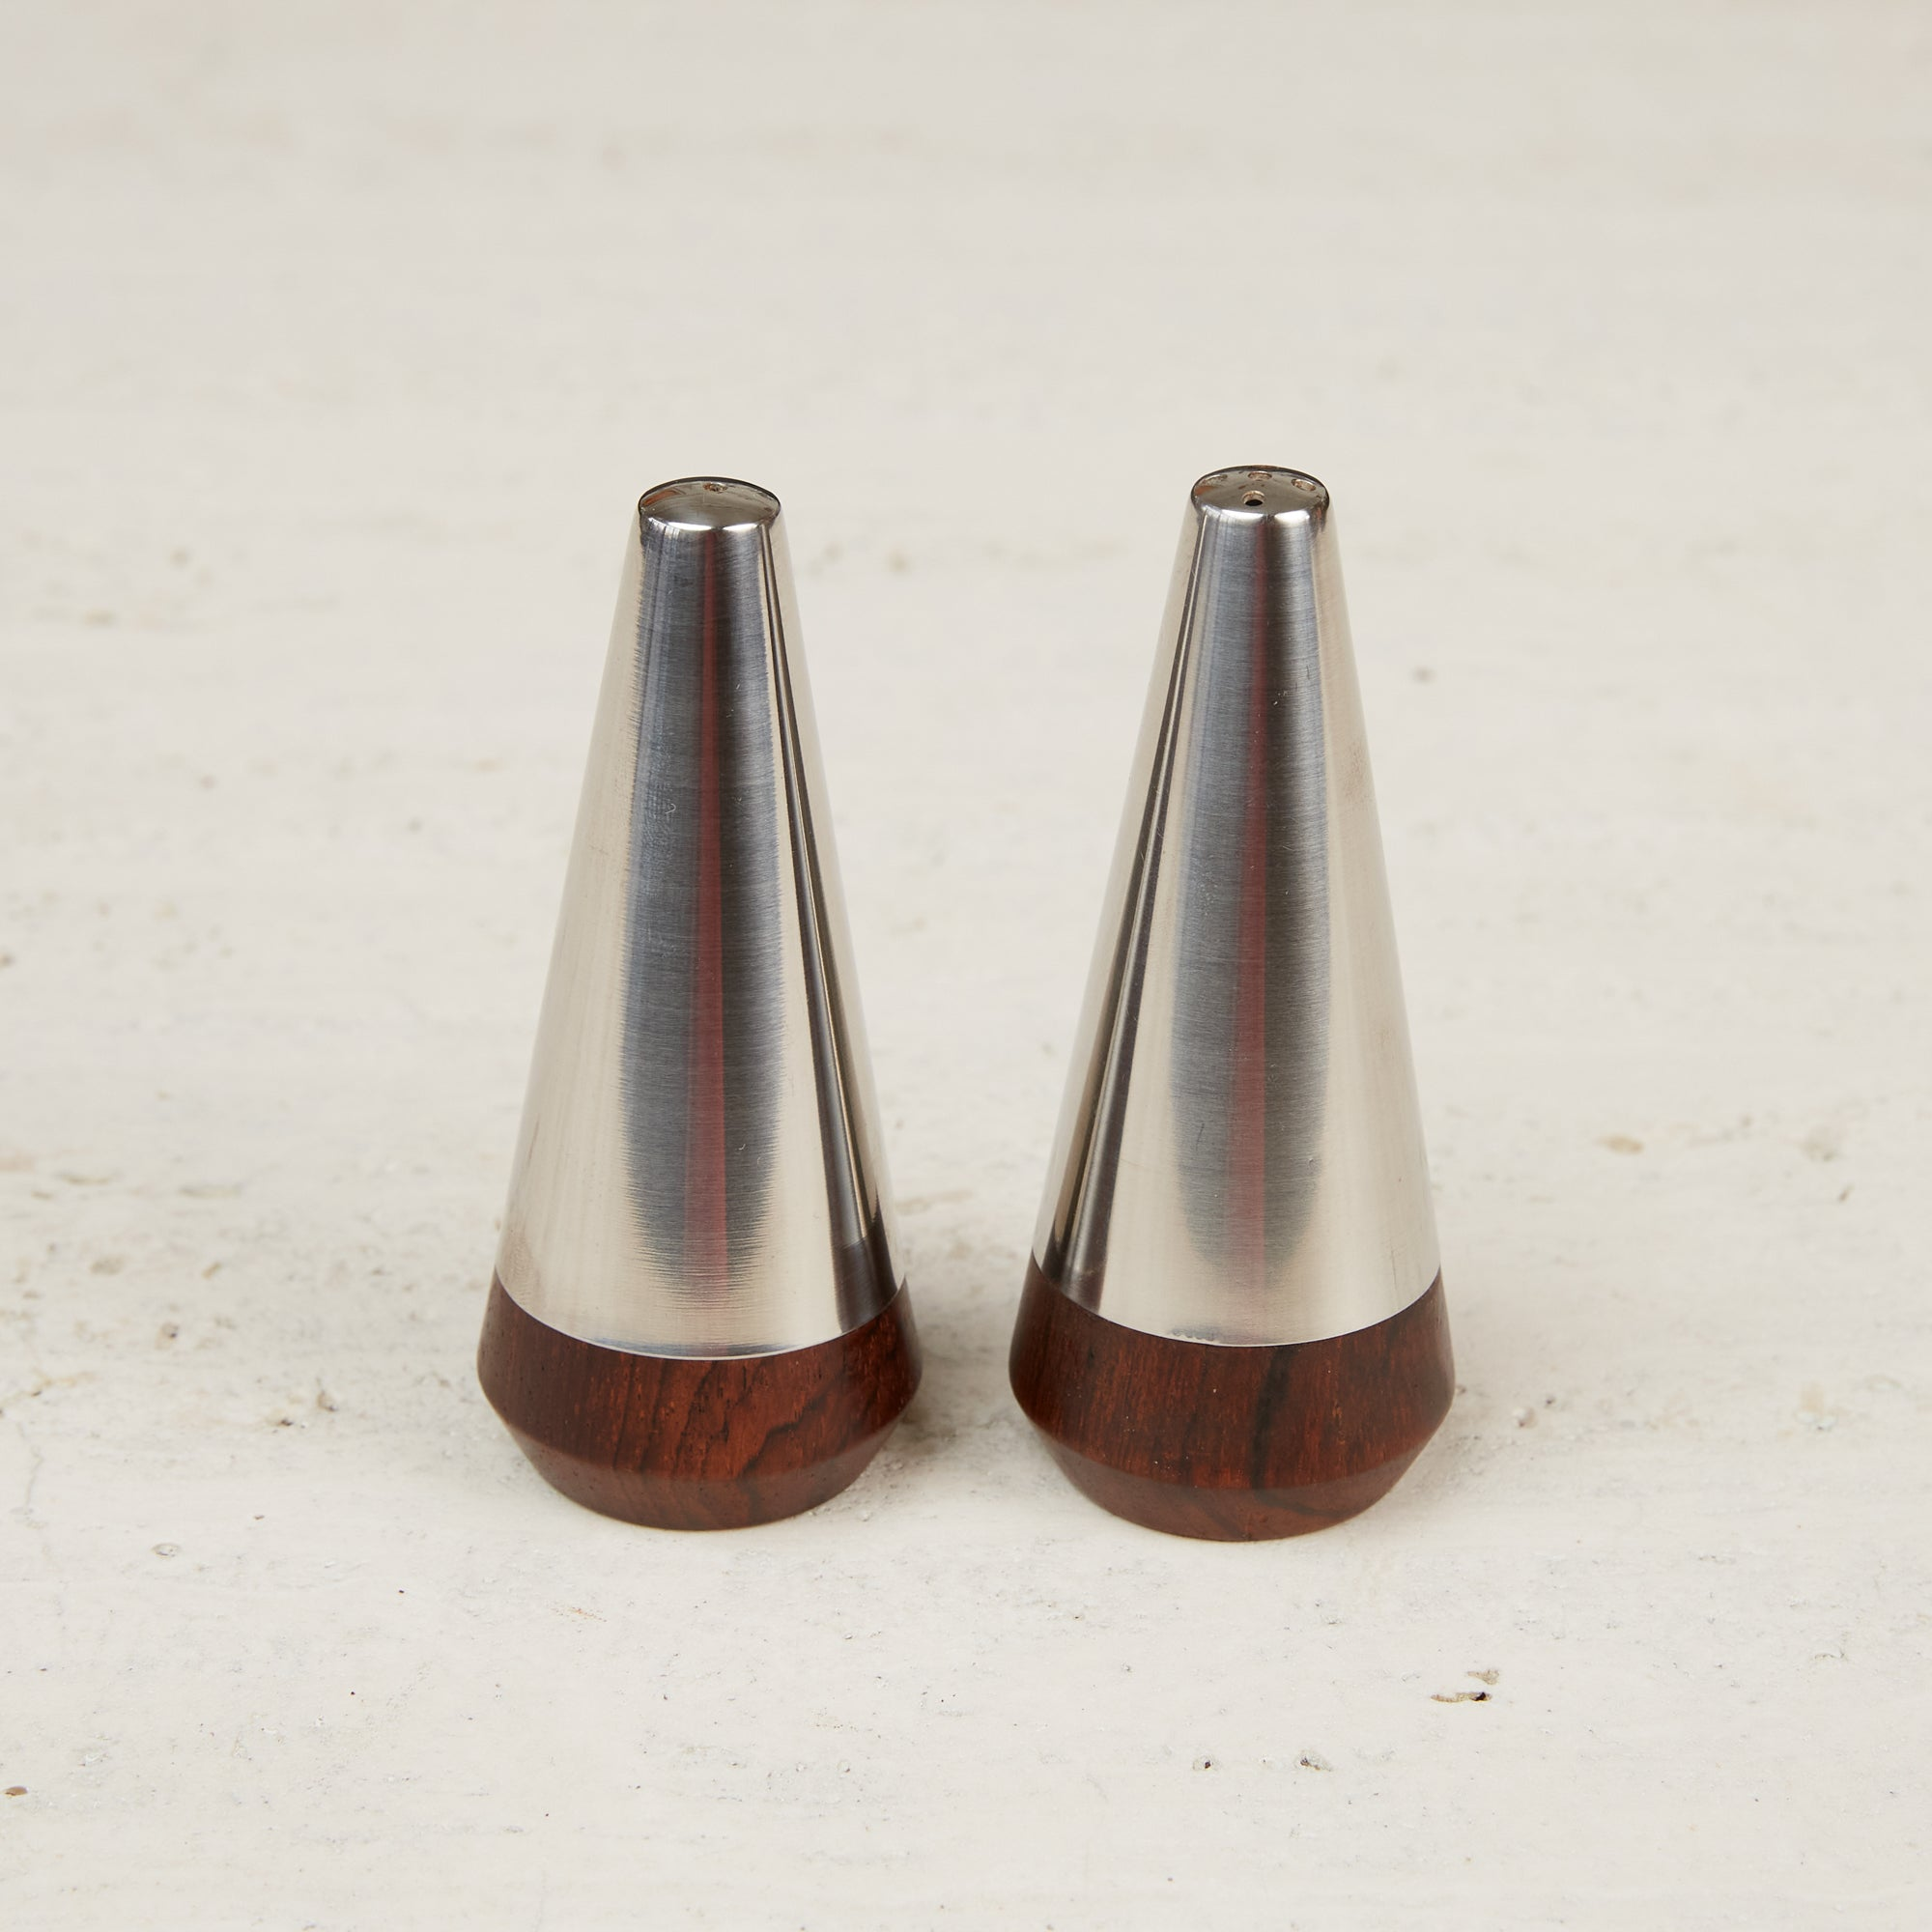 A&B Lundtofte Rosewood Salt & Pepper Shakers